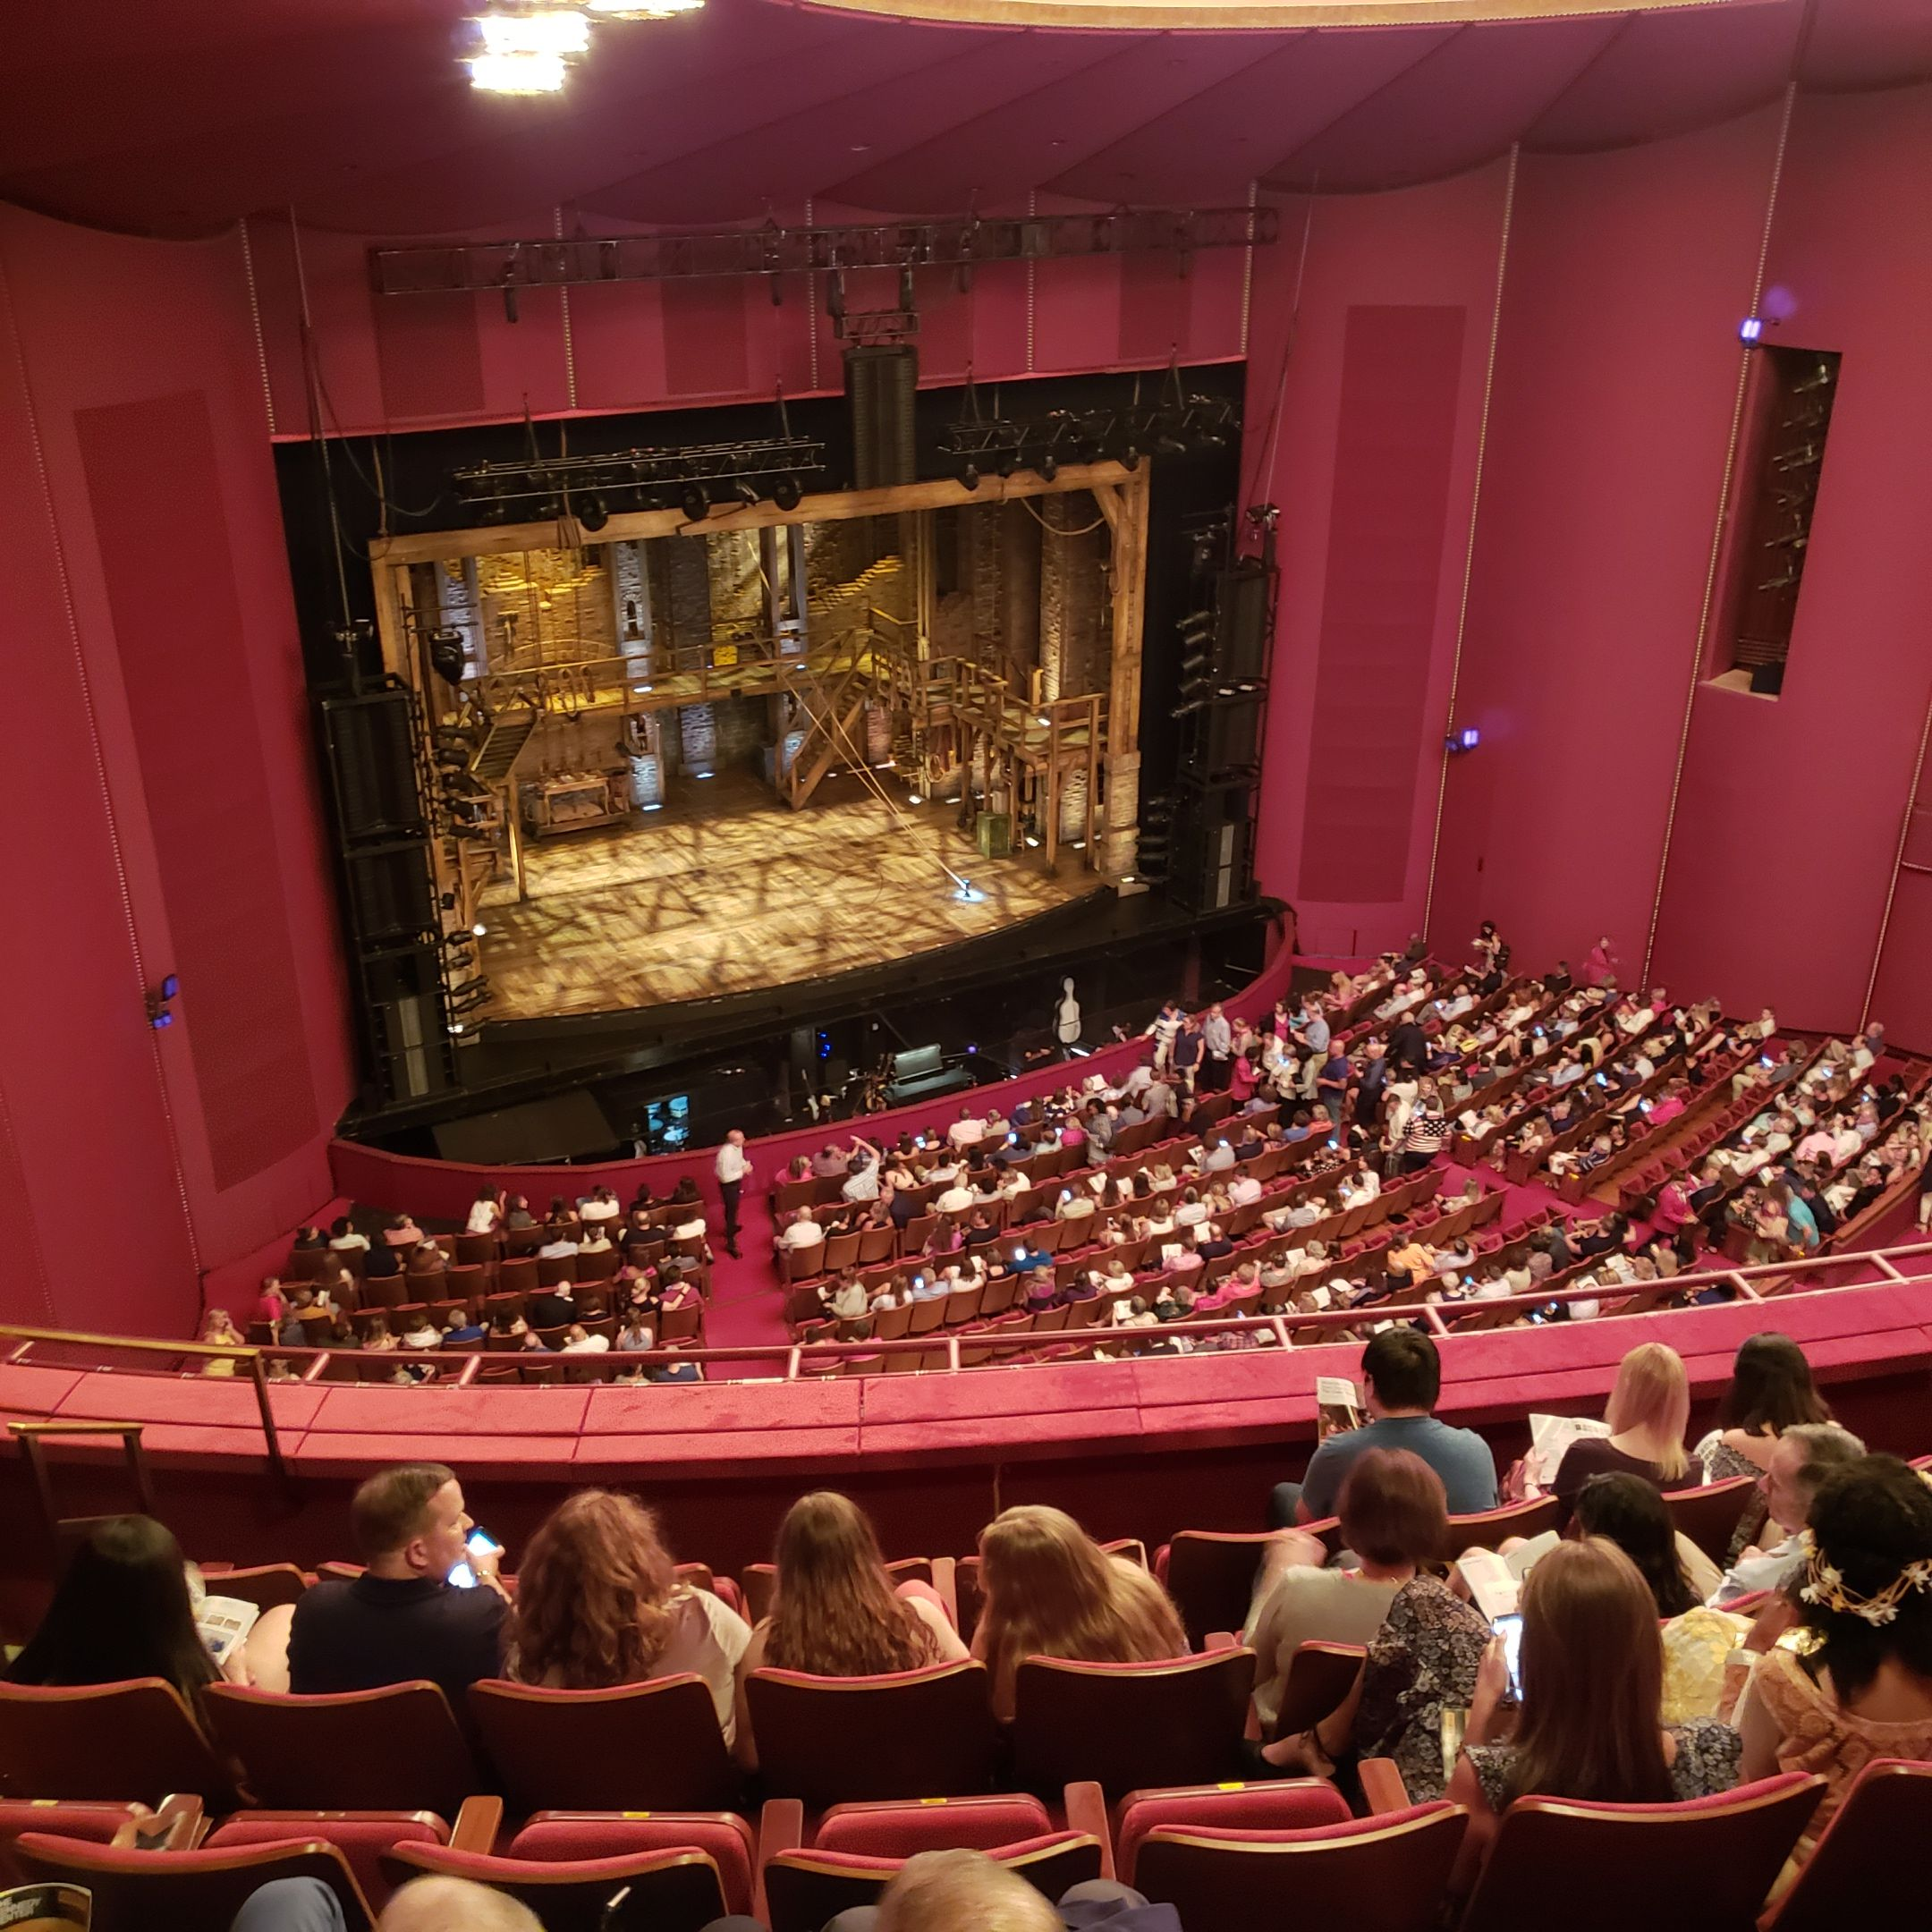 Hamilton Stage Opera House Kennedy Center Washington Dc Kennedy Center The Magic Flute Washington Dc